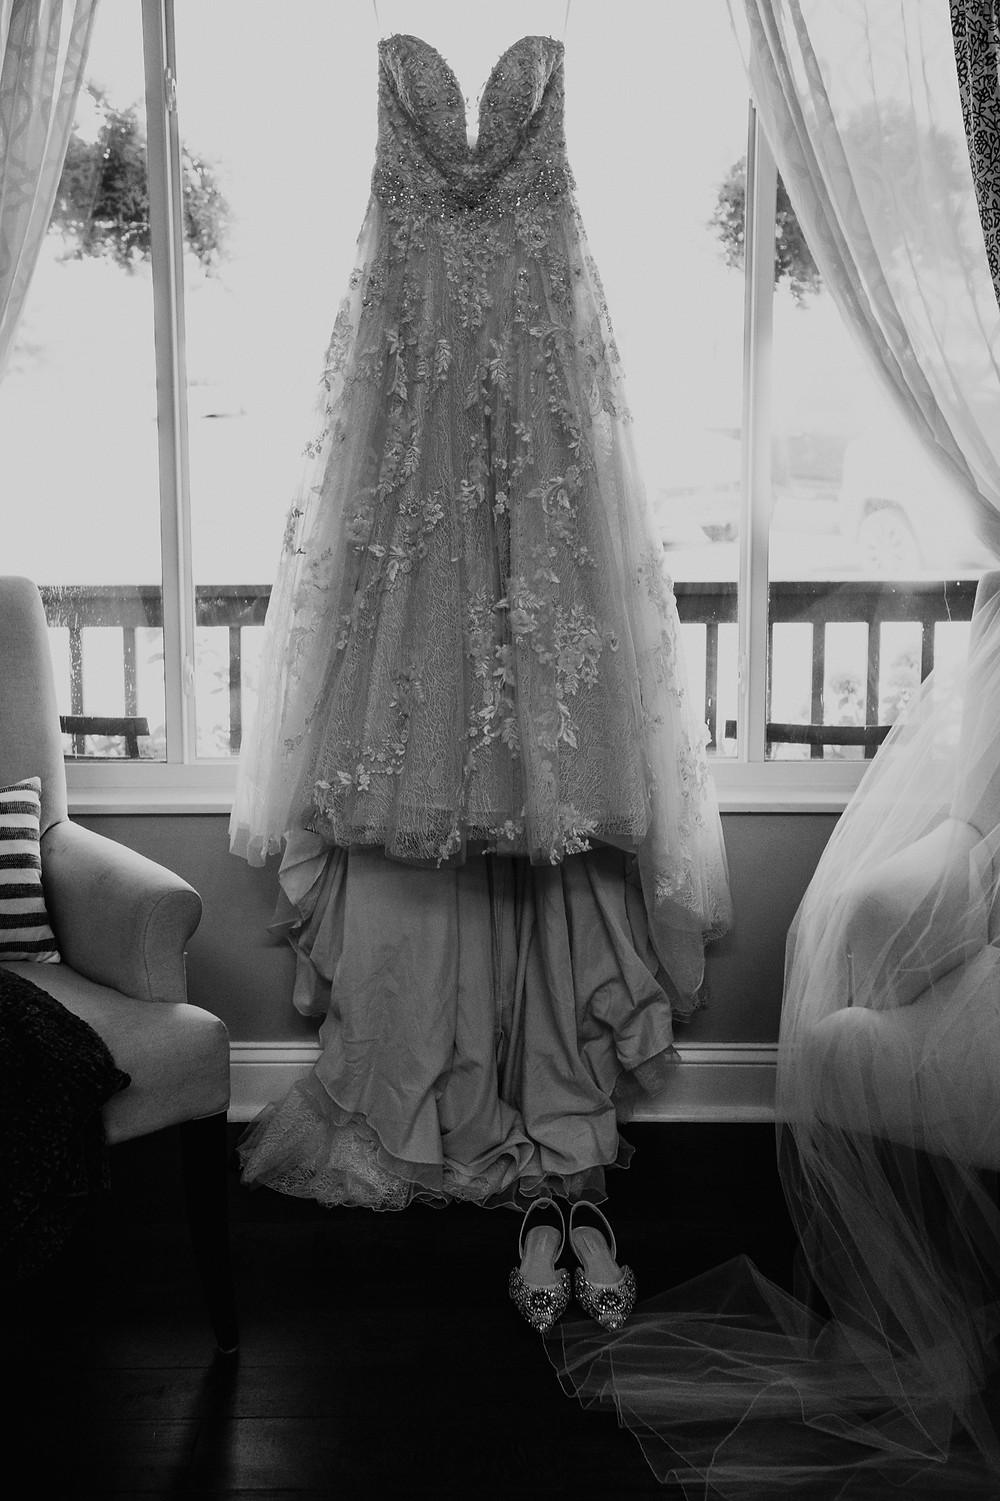 Wedding dress in window. Photographed by Nicole Leanne Photography.